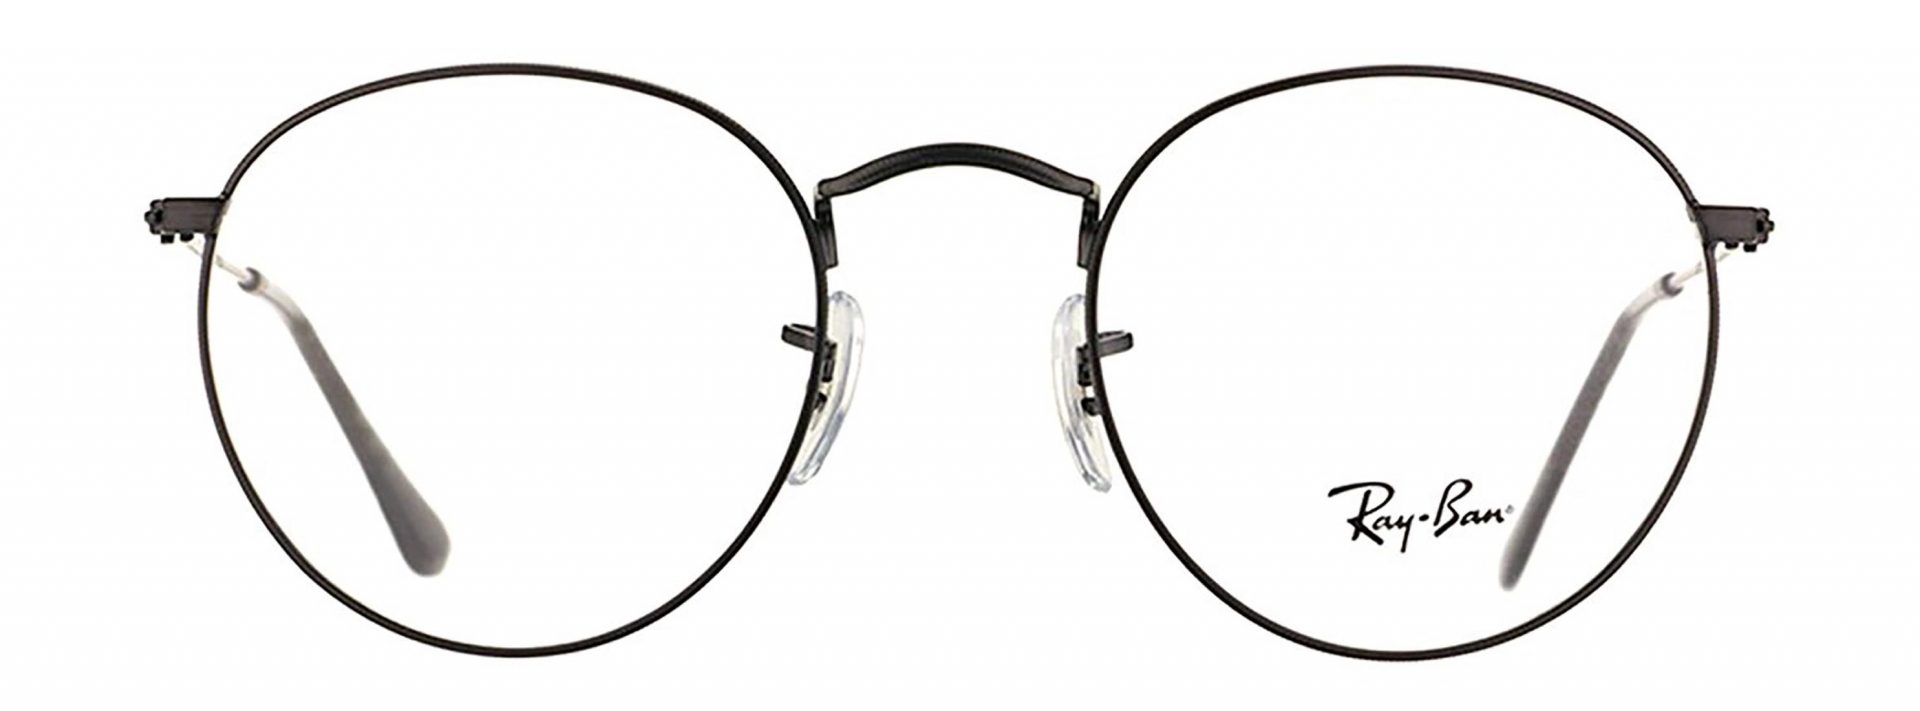 Ray-Ban spectacles 3447v 2503 1 2970x1100